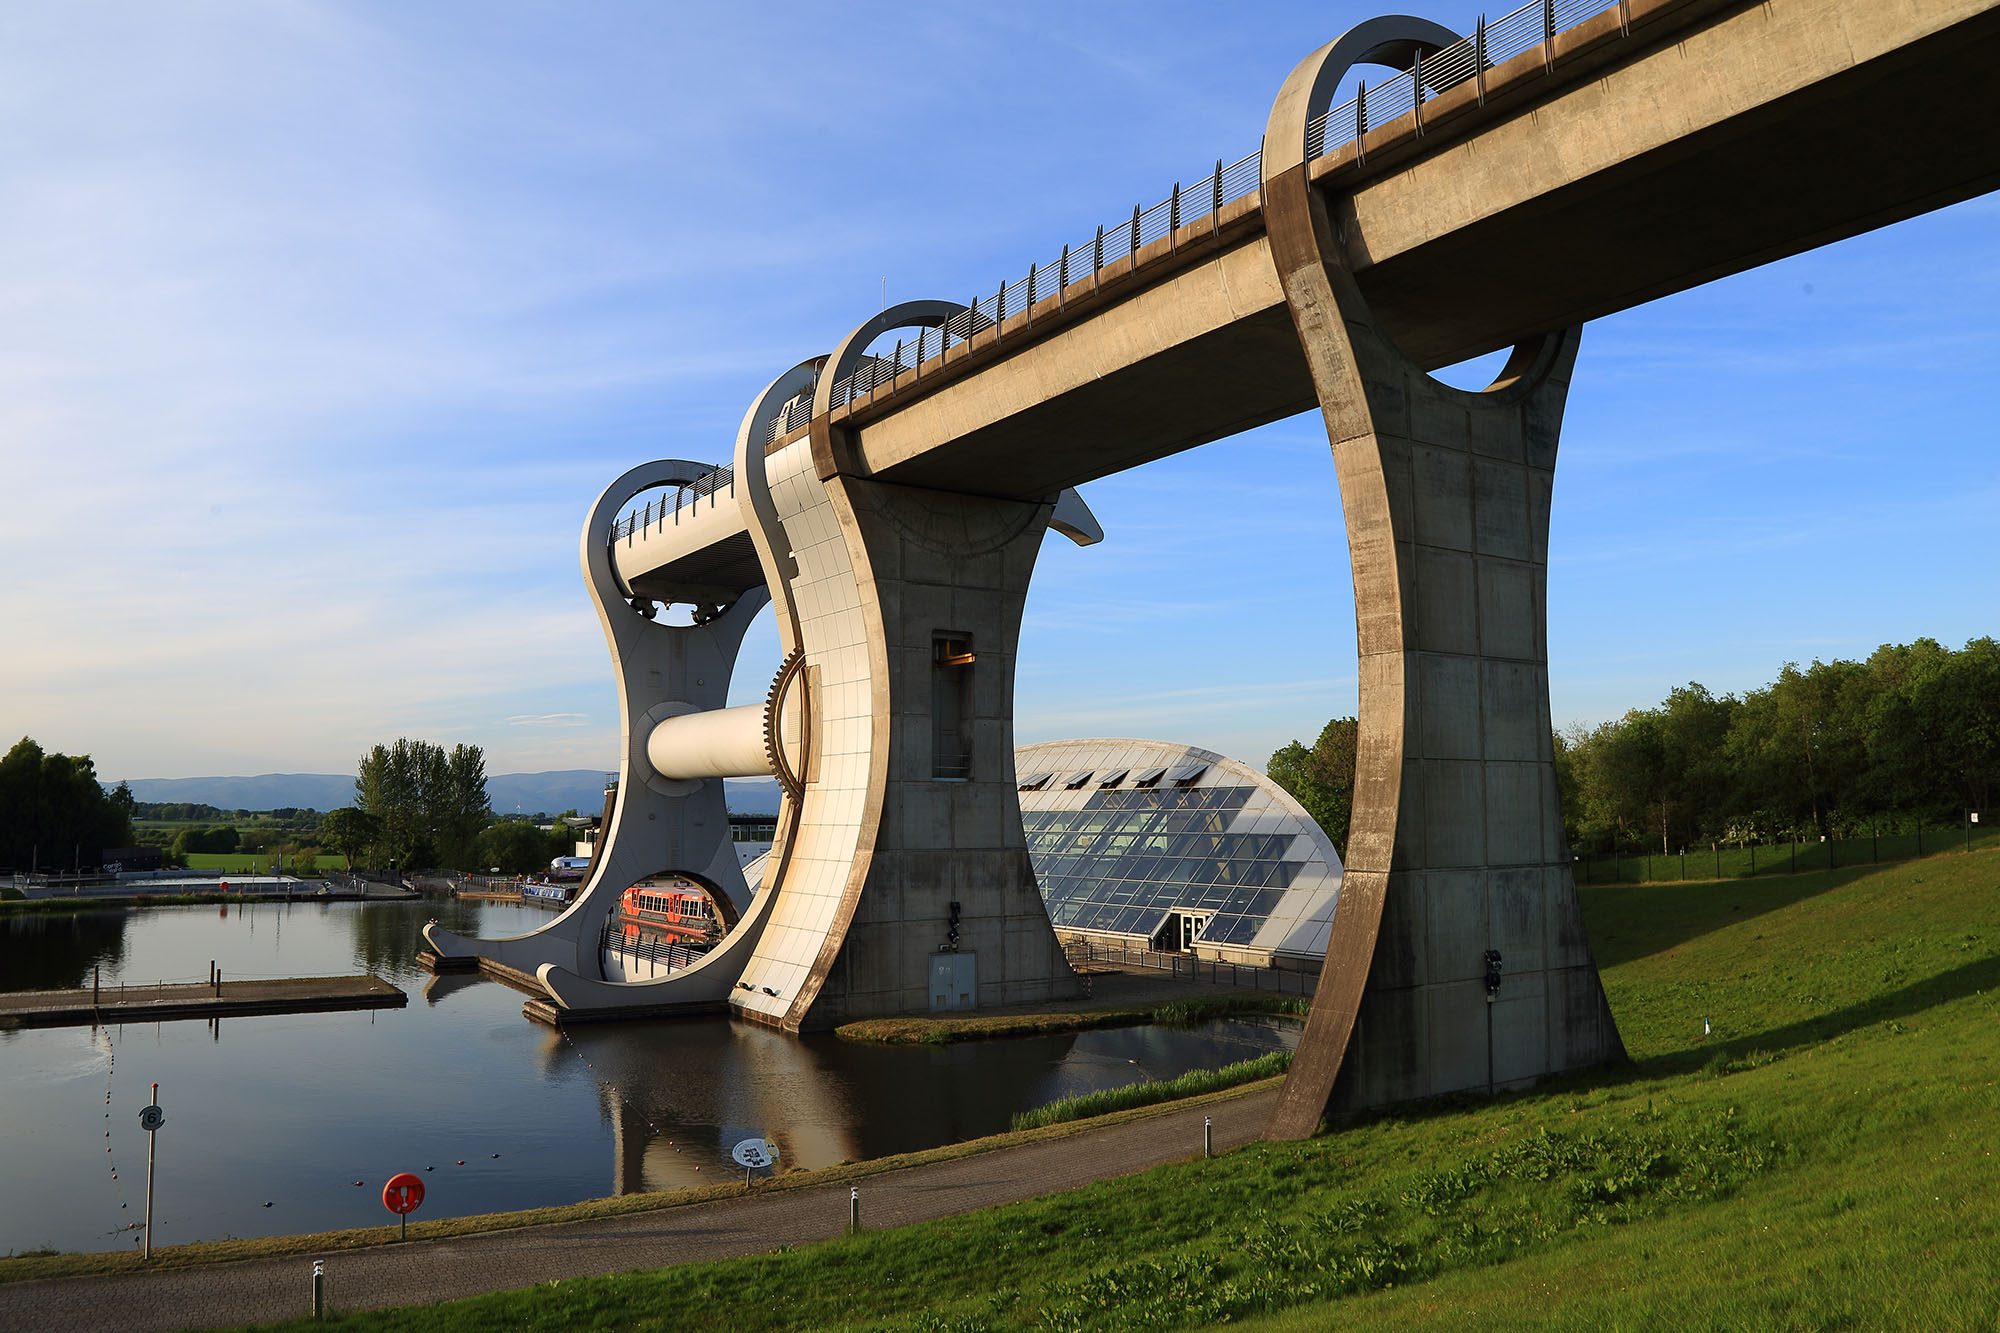 A picture of the Falkirk wheel